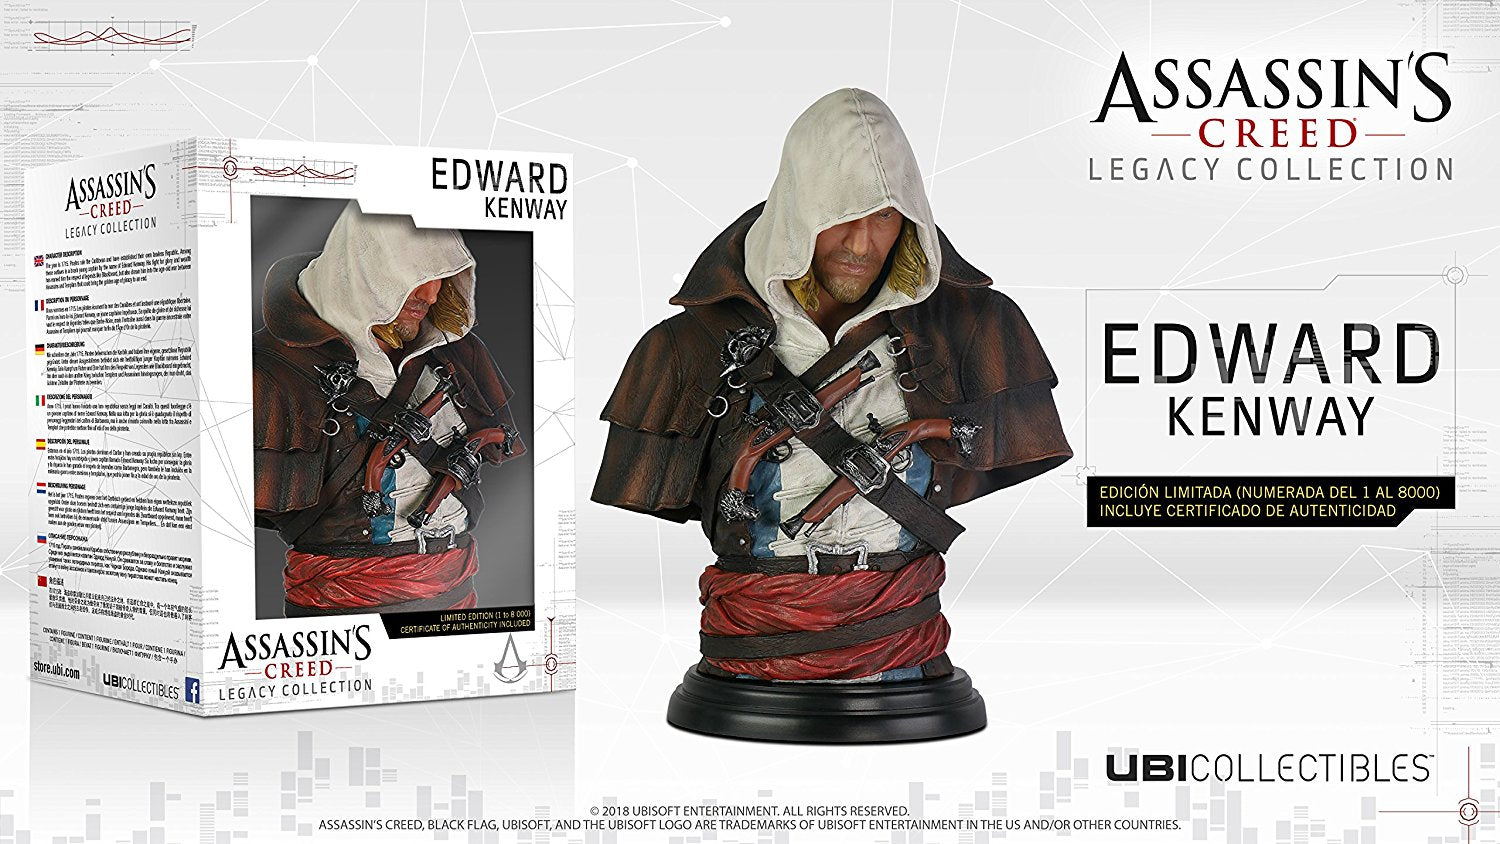 Assassin's Creed Legacy Collection: Edward Kenway Bust